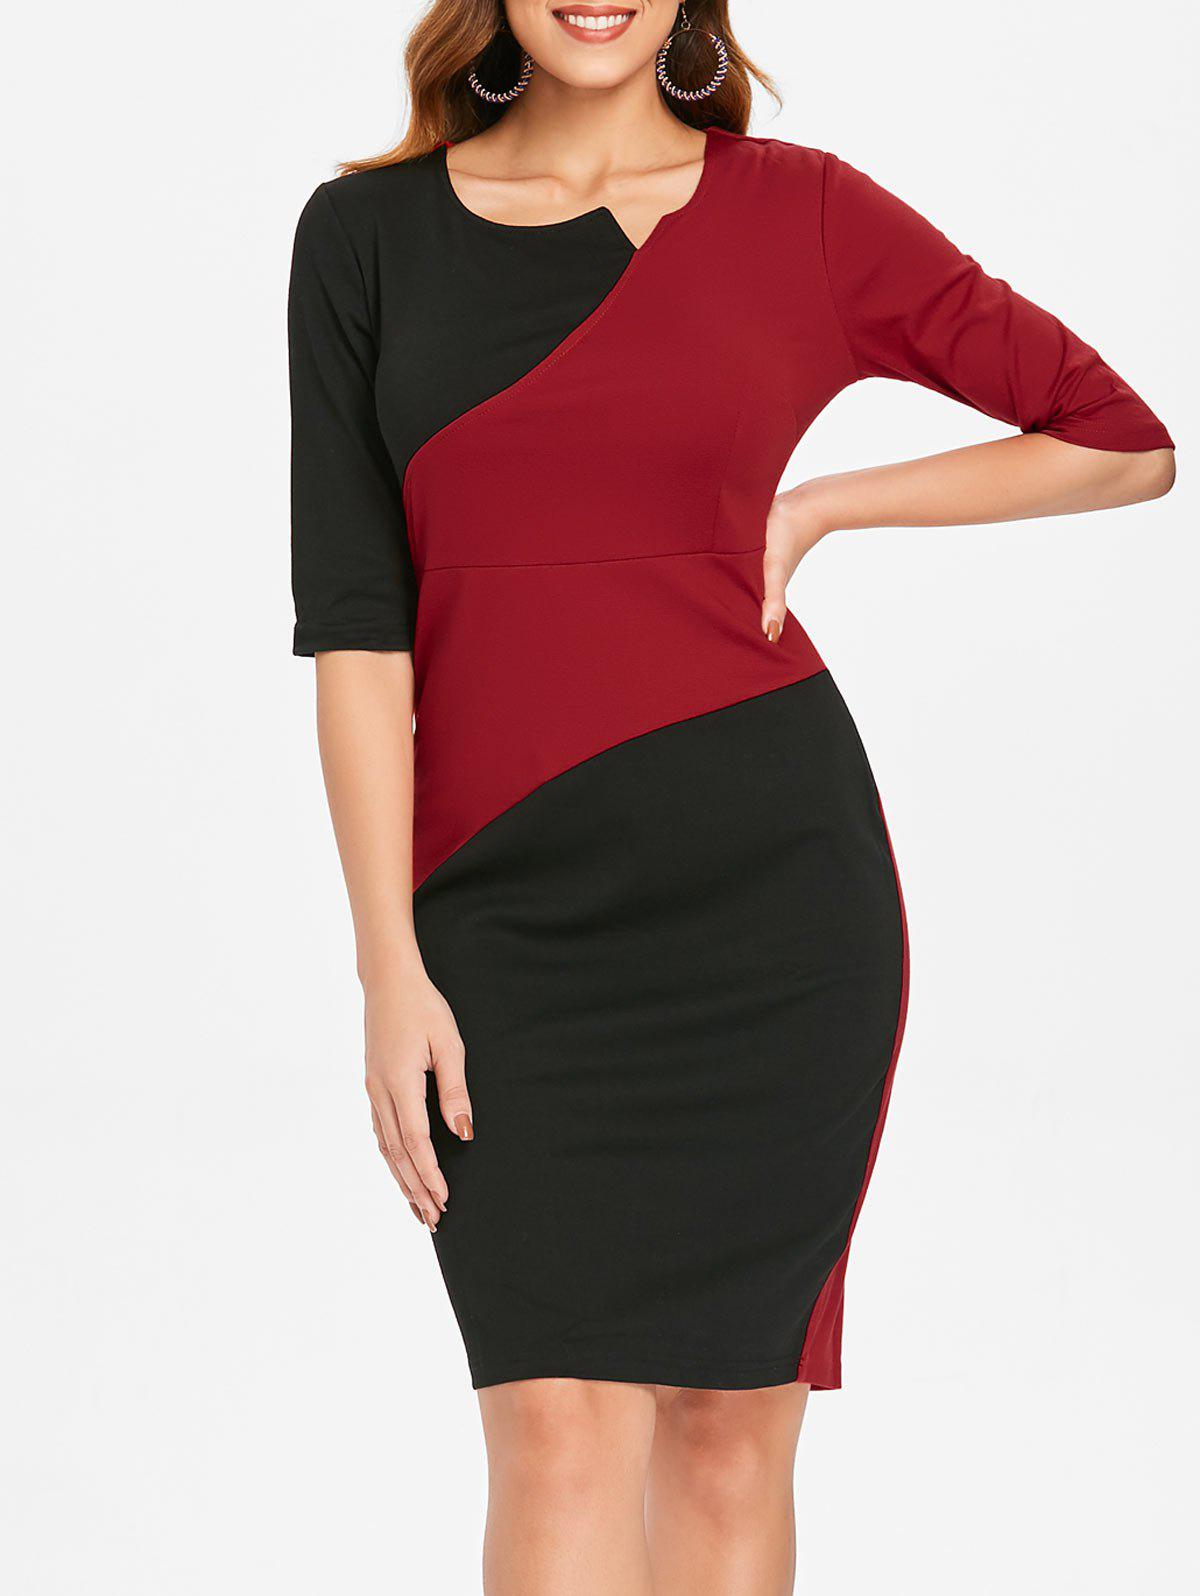 New Half Sleeve Contrast Sheath Dress